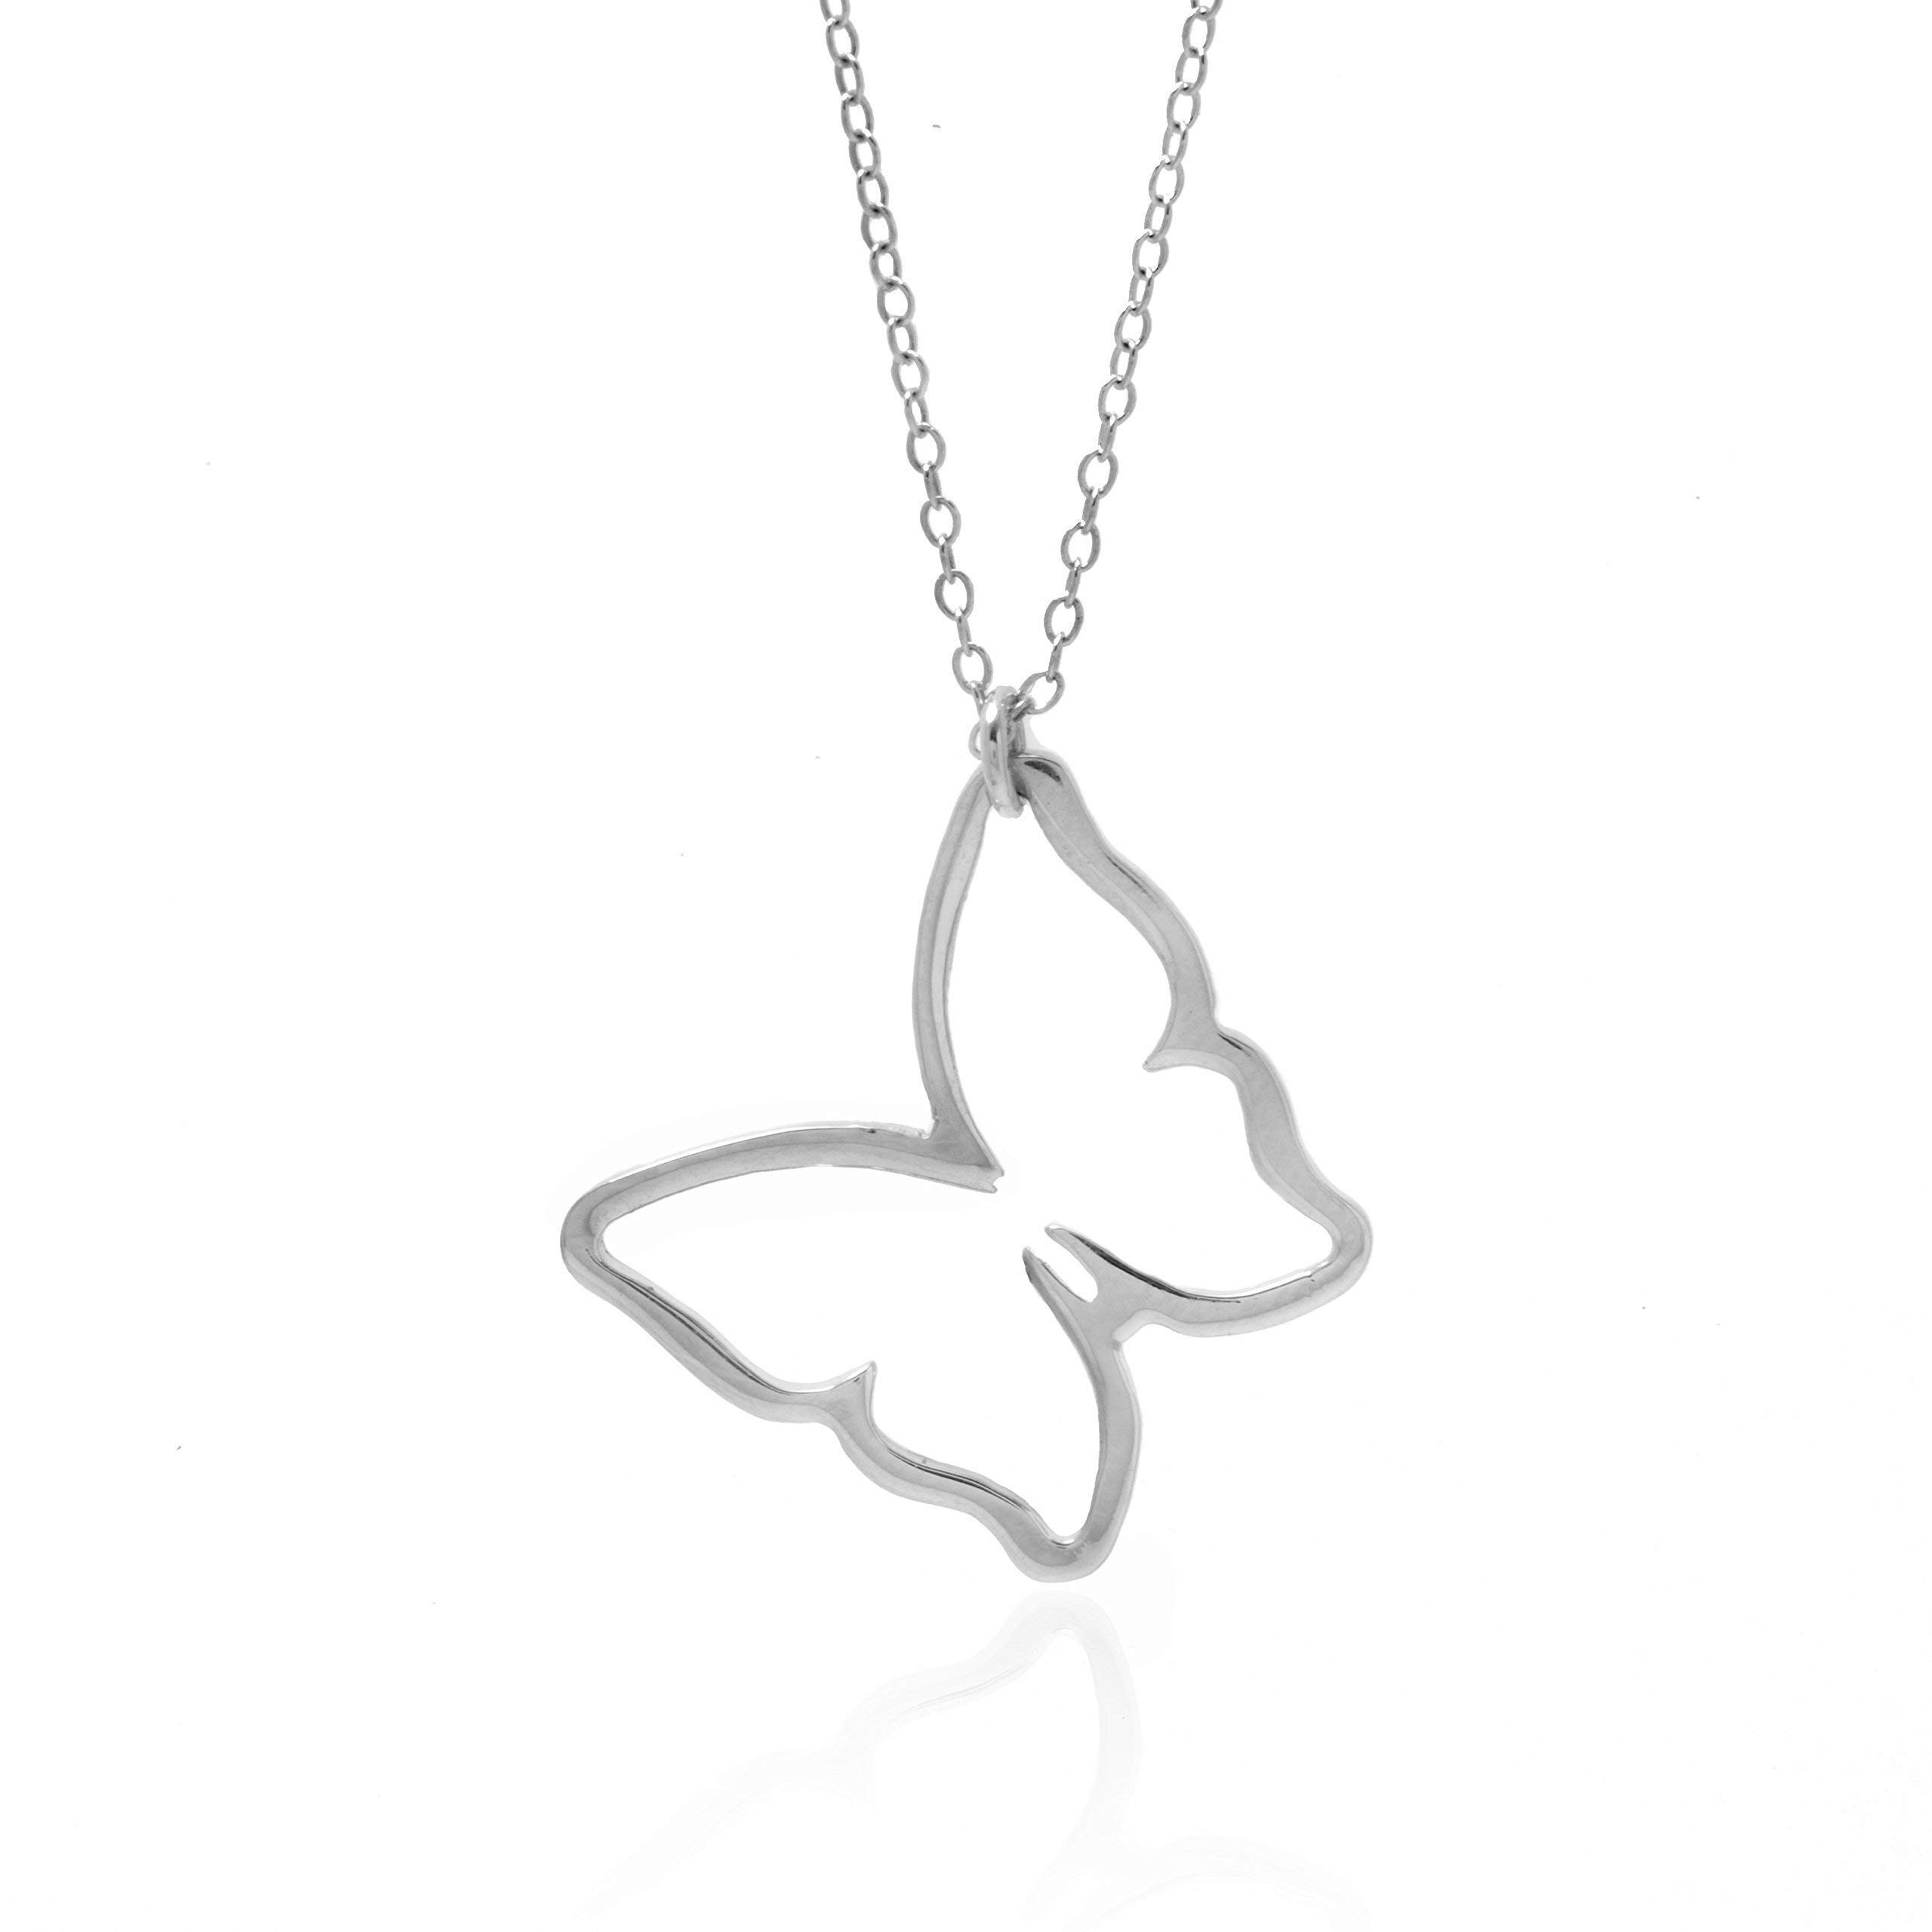 BUTTERFLY NECKLACE - PURE Sterling Silver Necklace (HandeMade in the USA by Gracefully Made Jewelry)